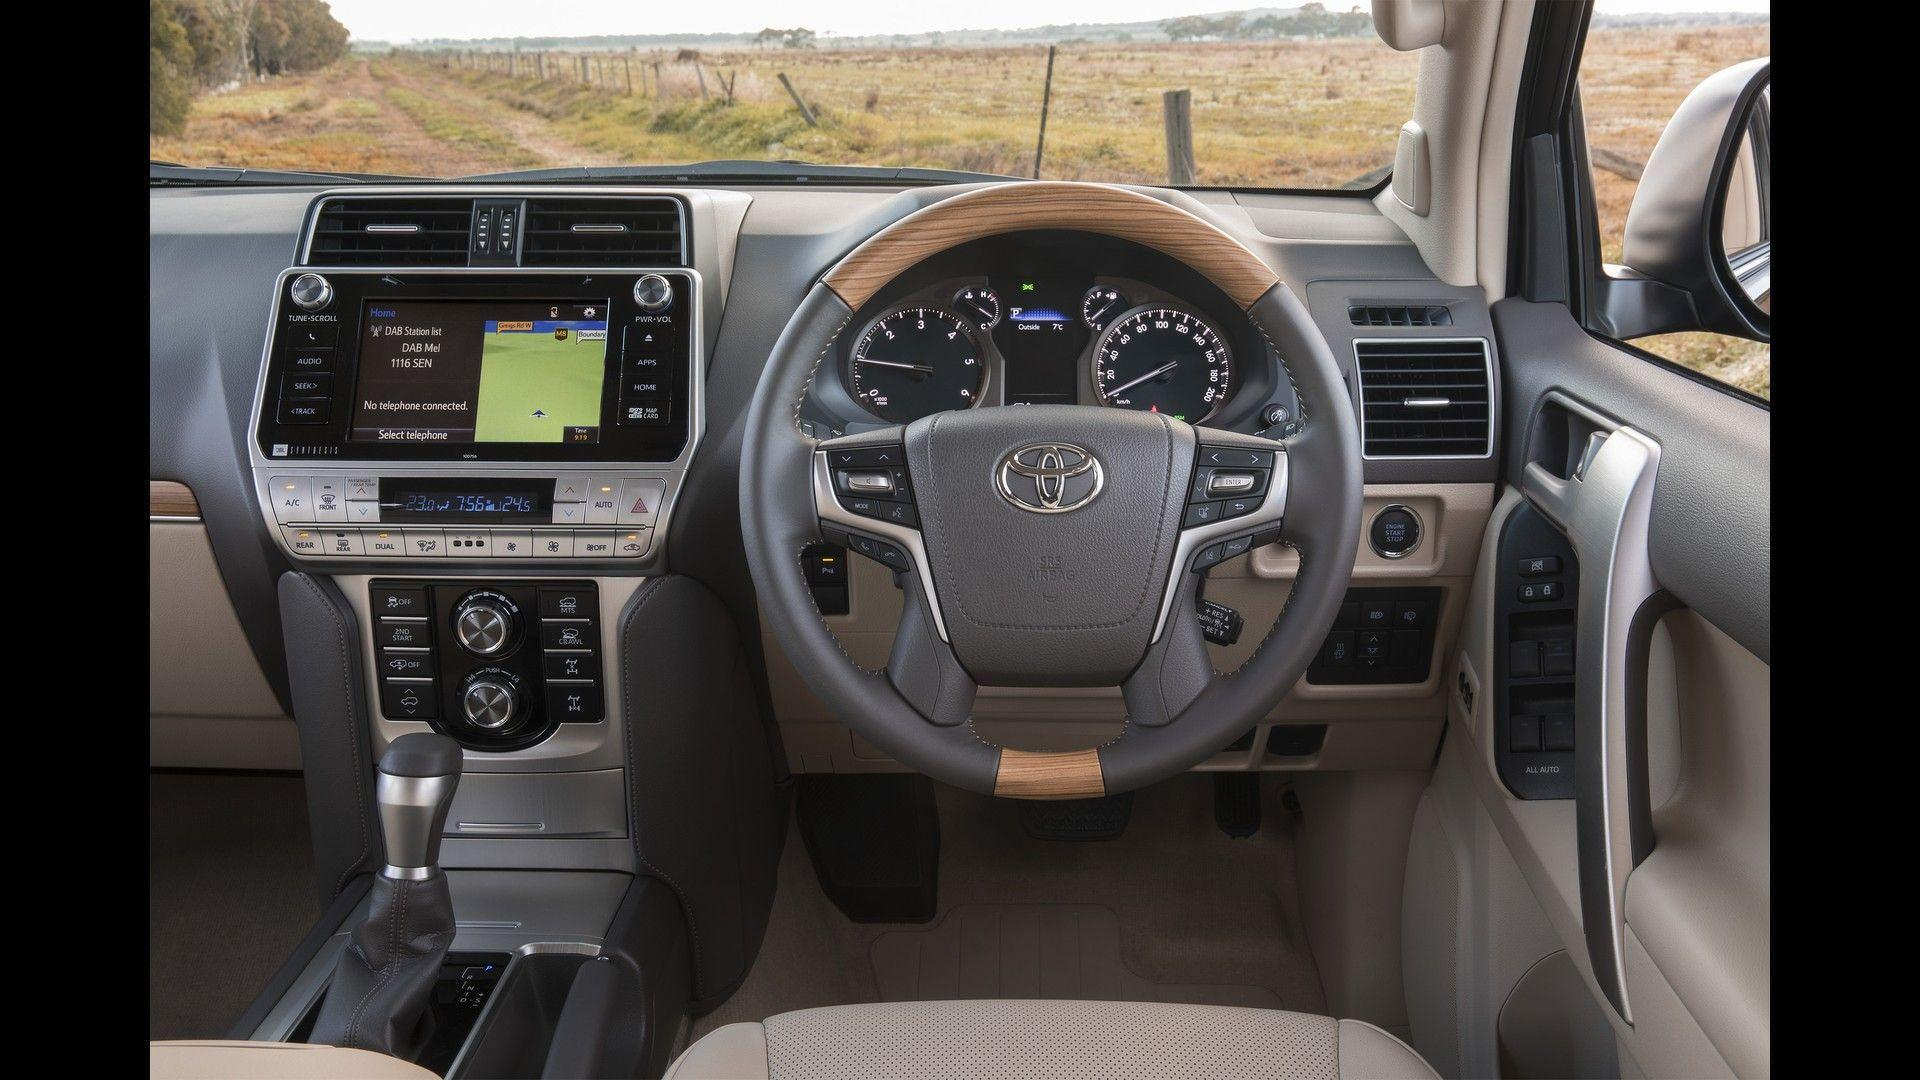 2018-toyota-land-cruiser-australia-official-image (5)